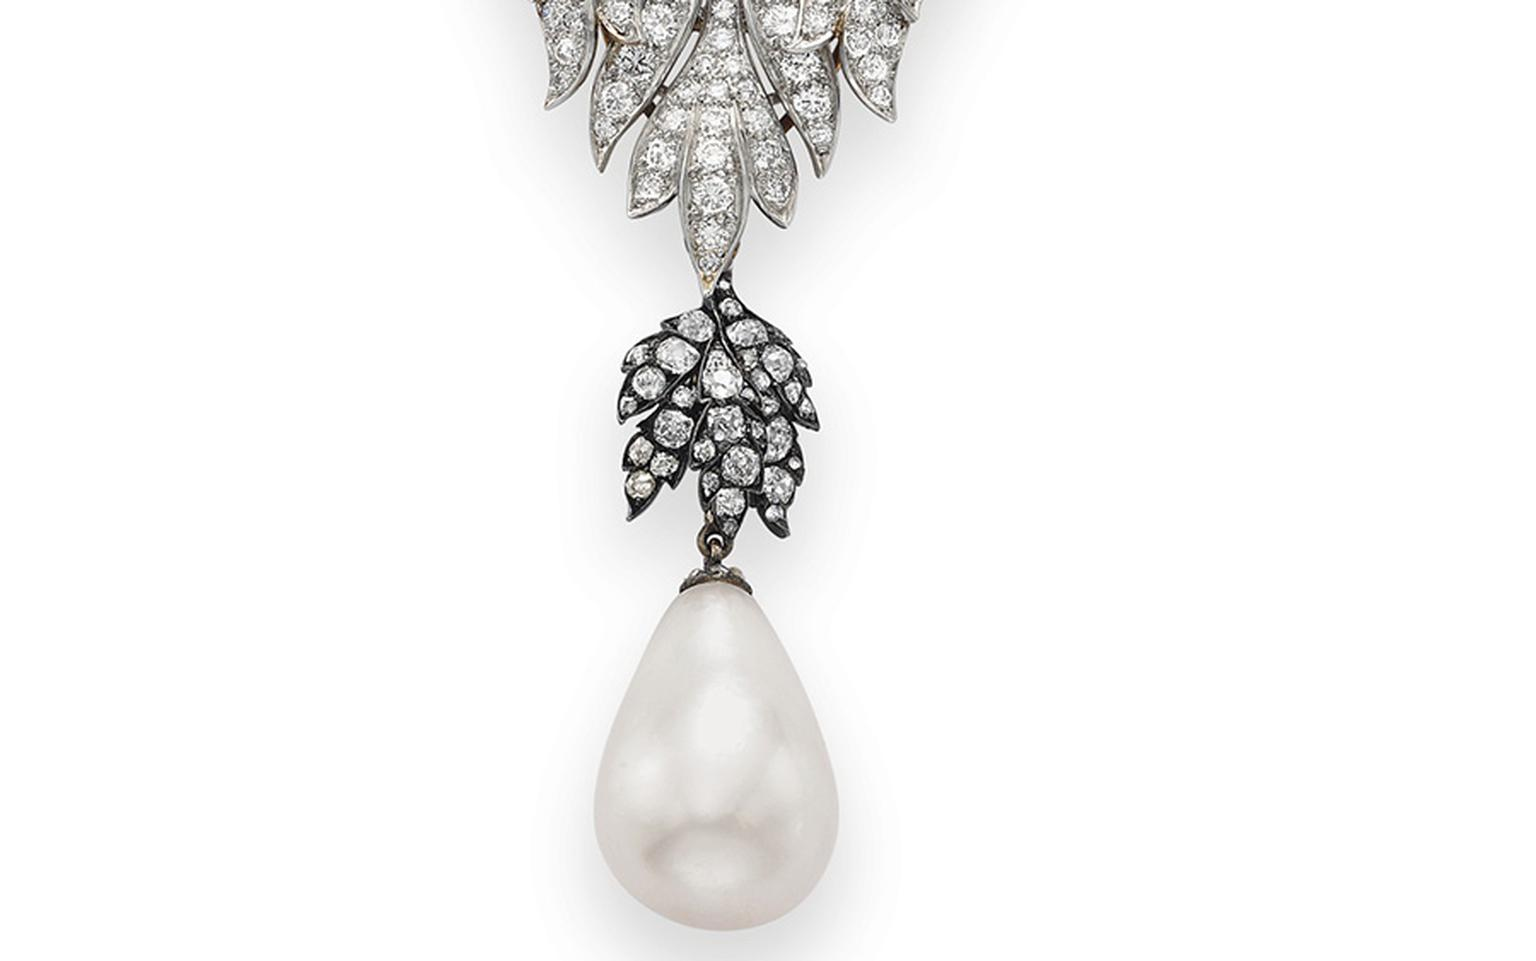 La Peregrina pearl that belonged to Elizabeth Taylor and sold for $11.8 m was a gift from Richard Burton